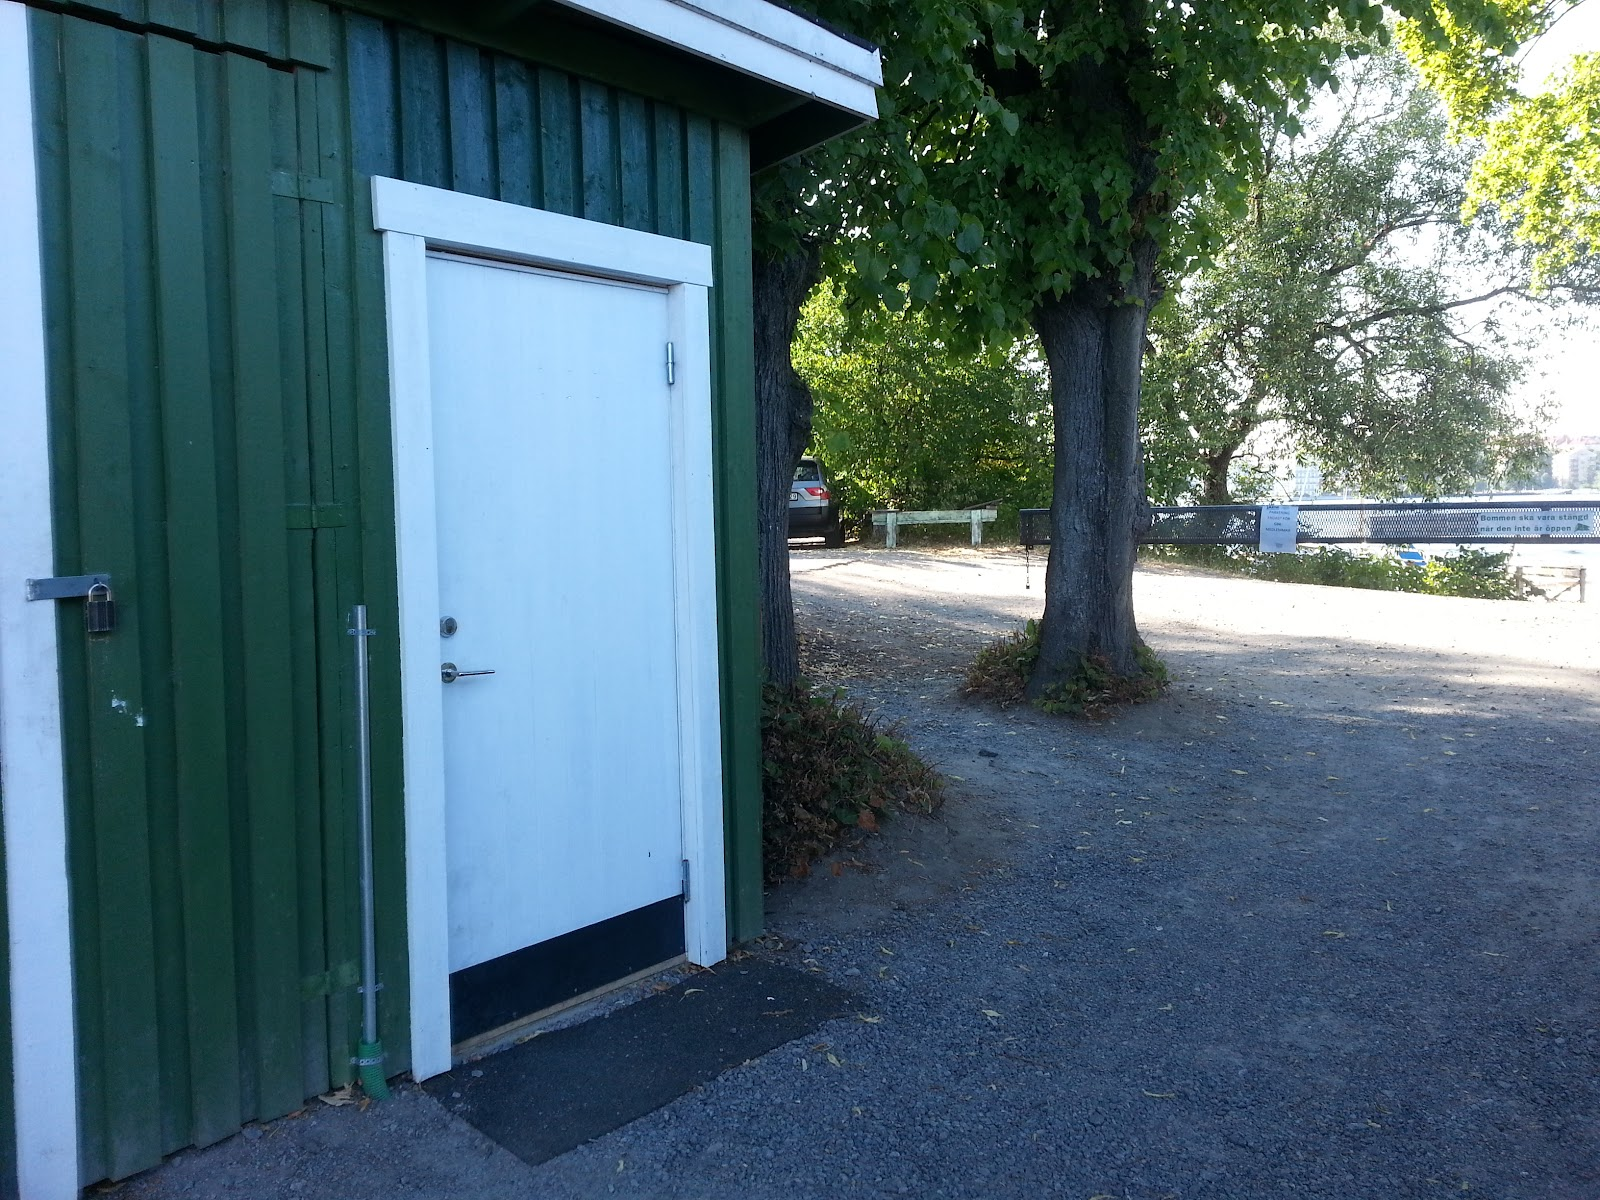 Image shows the door of the accessible bathroom. The accessible bathroom is located right next to the entrance of the harbour-area.